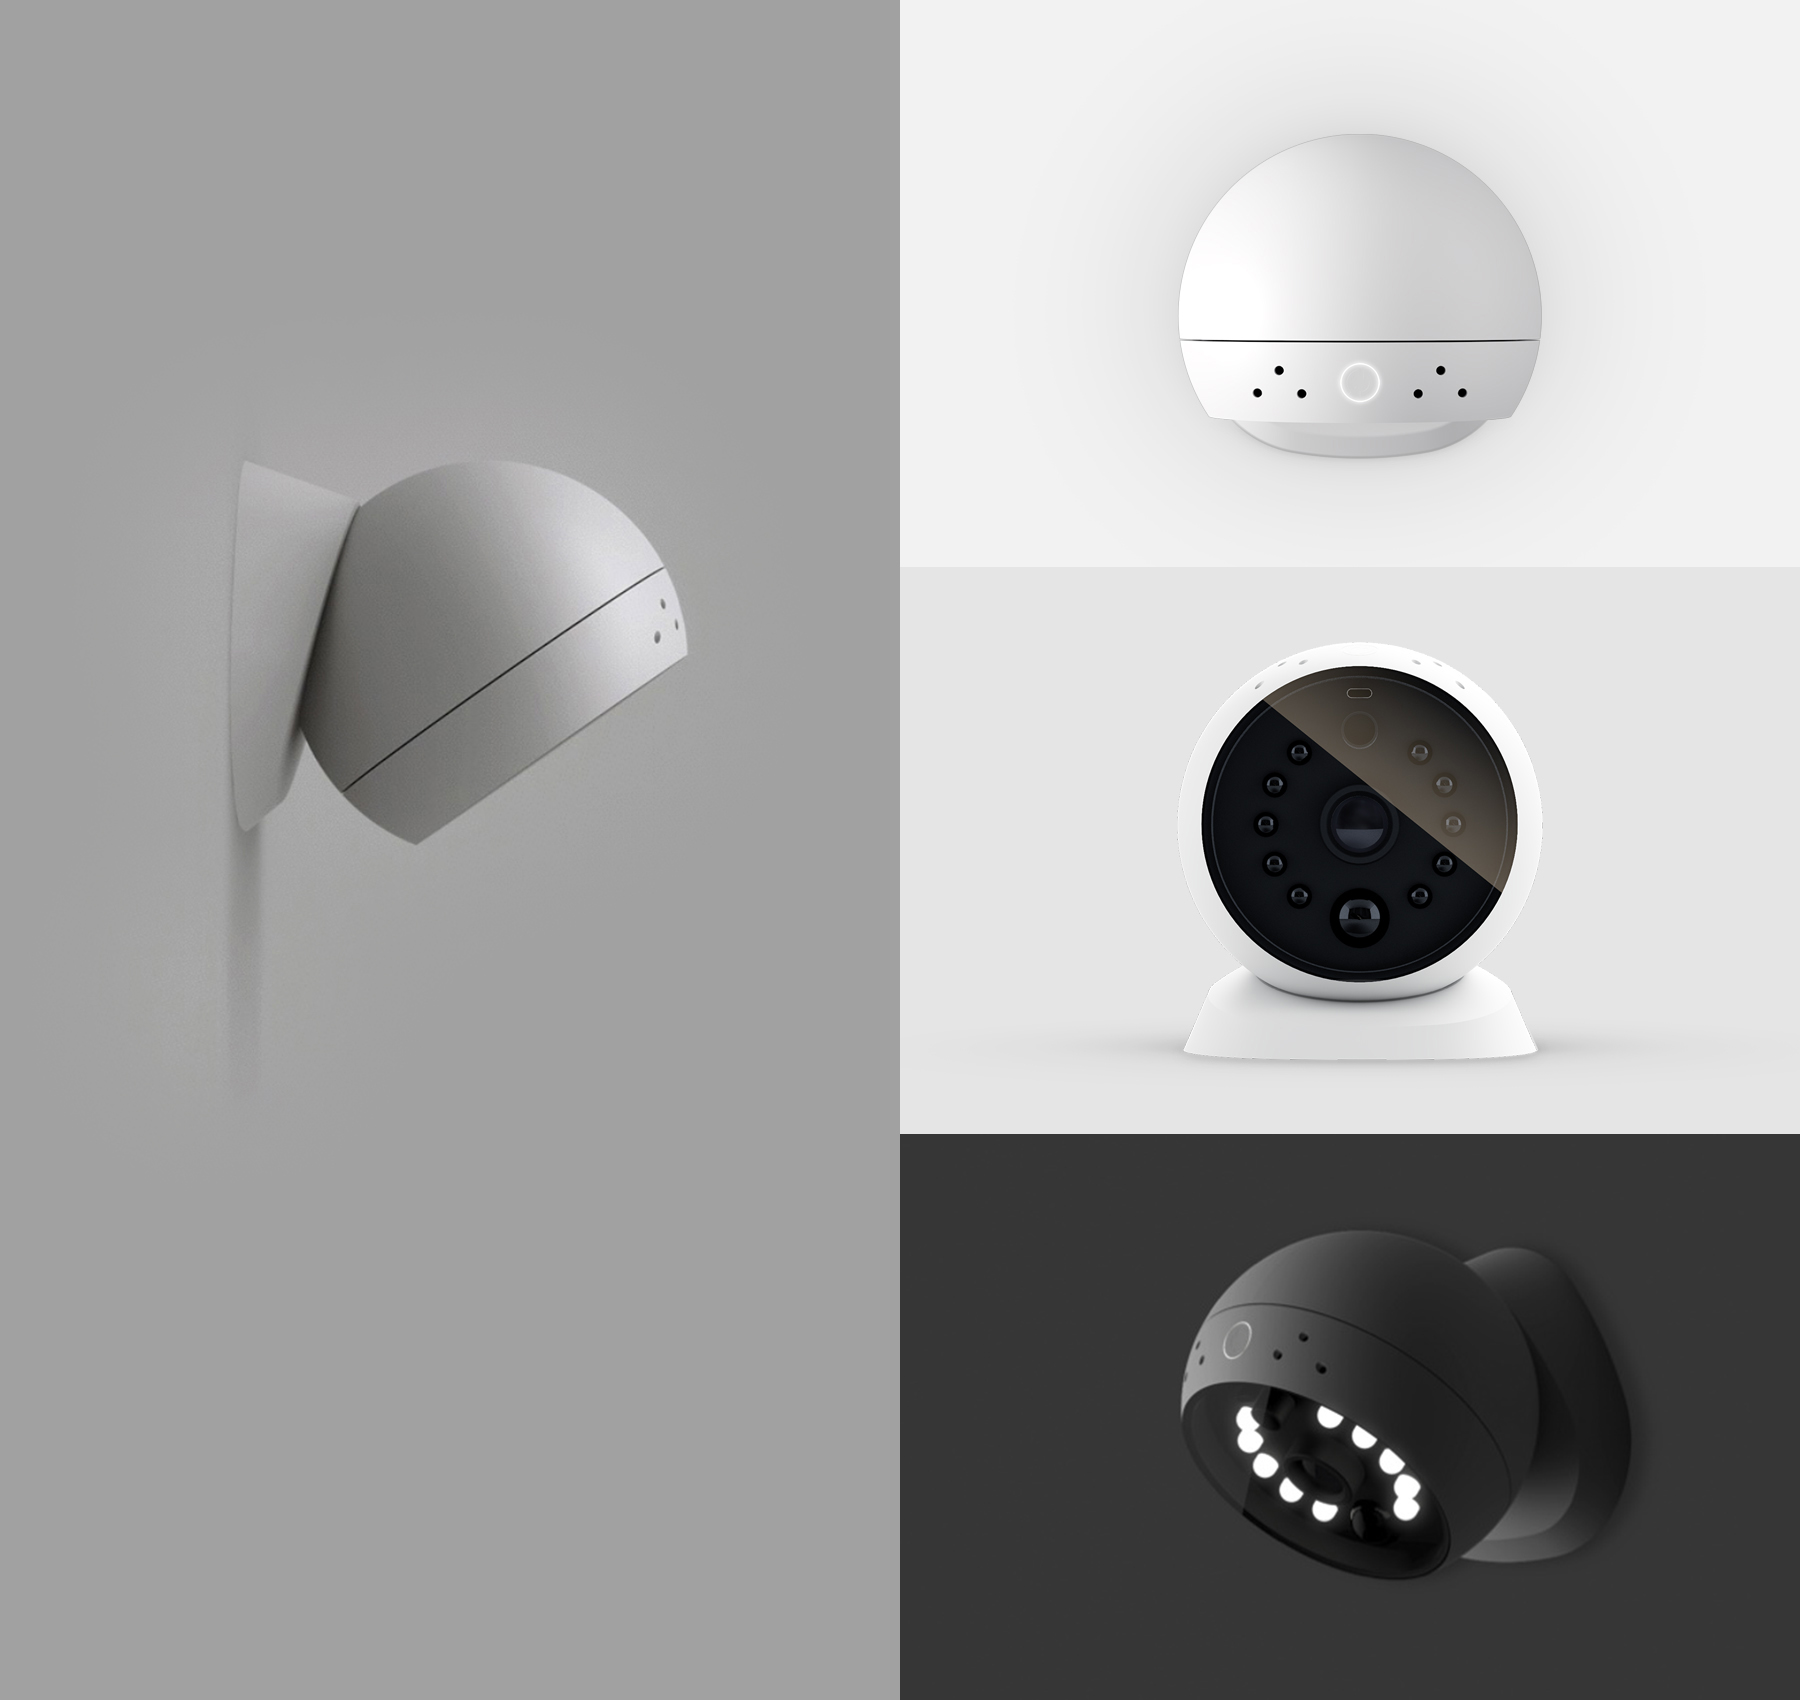 The camera has a built-in motion sensor that sends an alert to users' devices whenever it detects movement. The body is attached to a magnetic base, which allows for easy detachment and independent use, as well as rotation in any angle or direction, and a built-in LED lights for night mode.